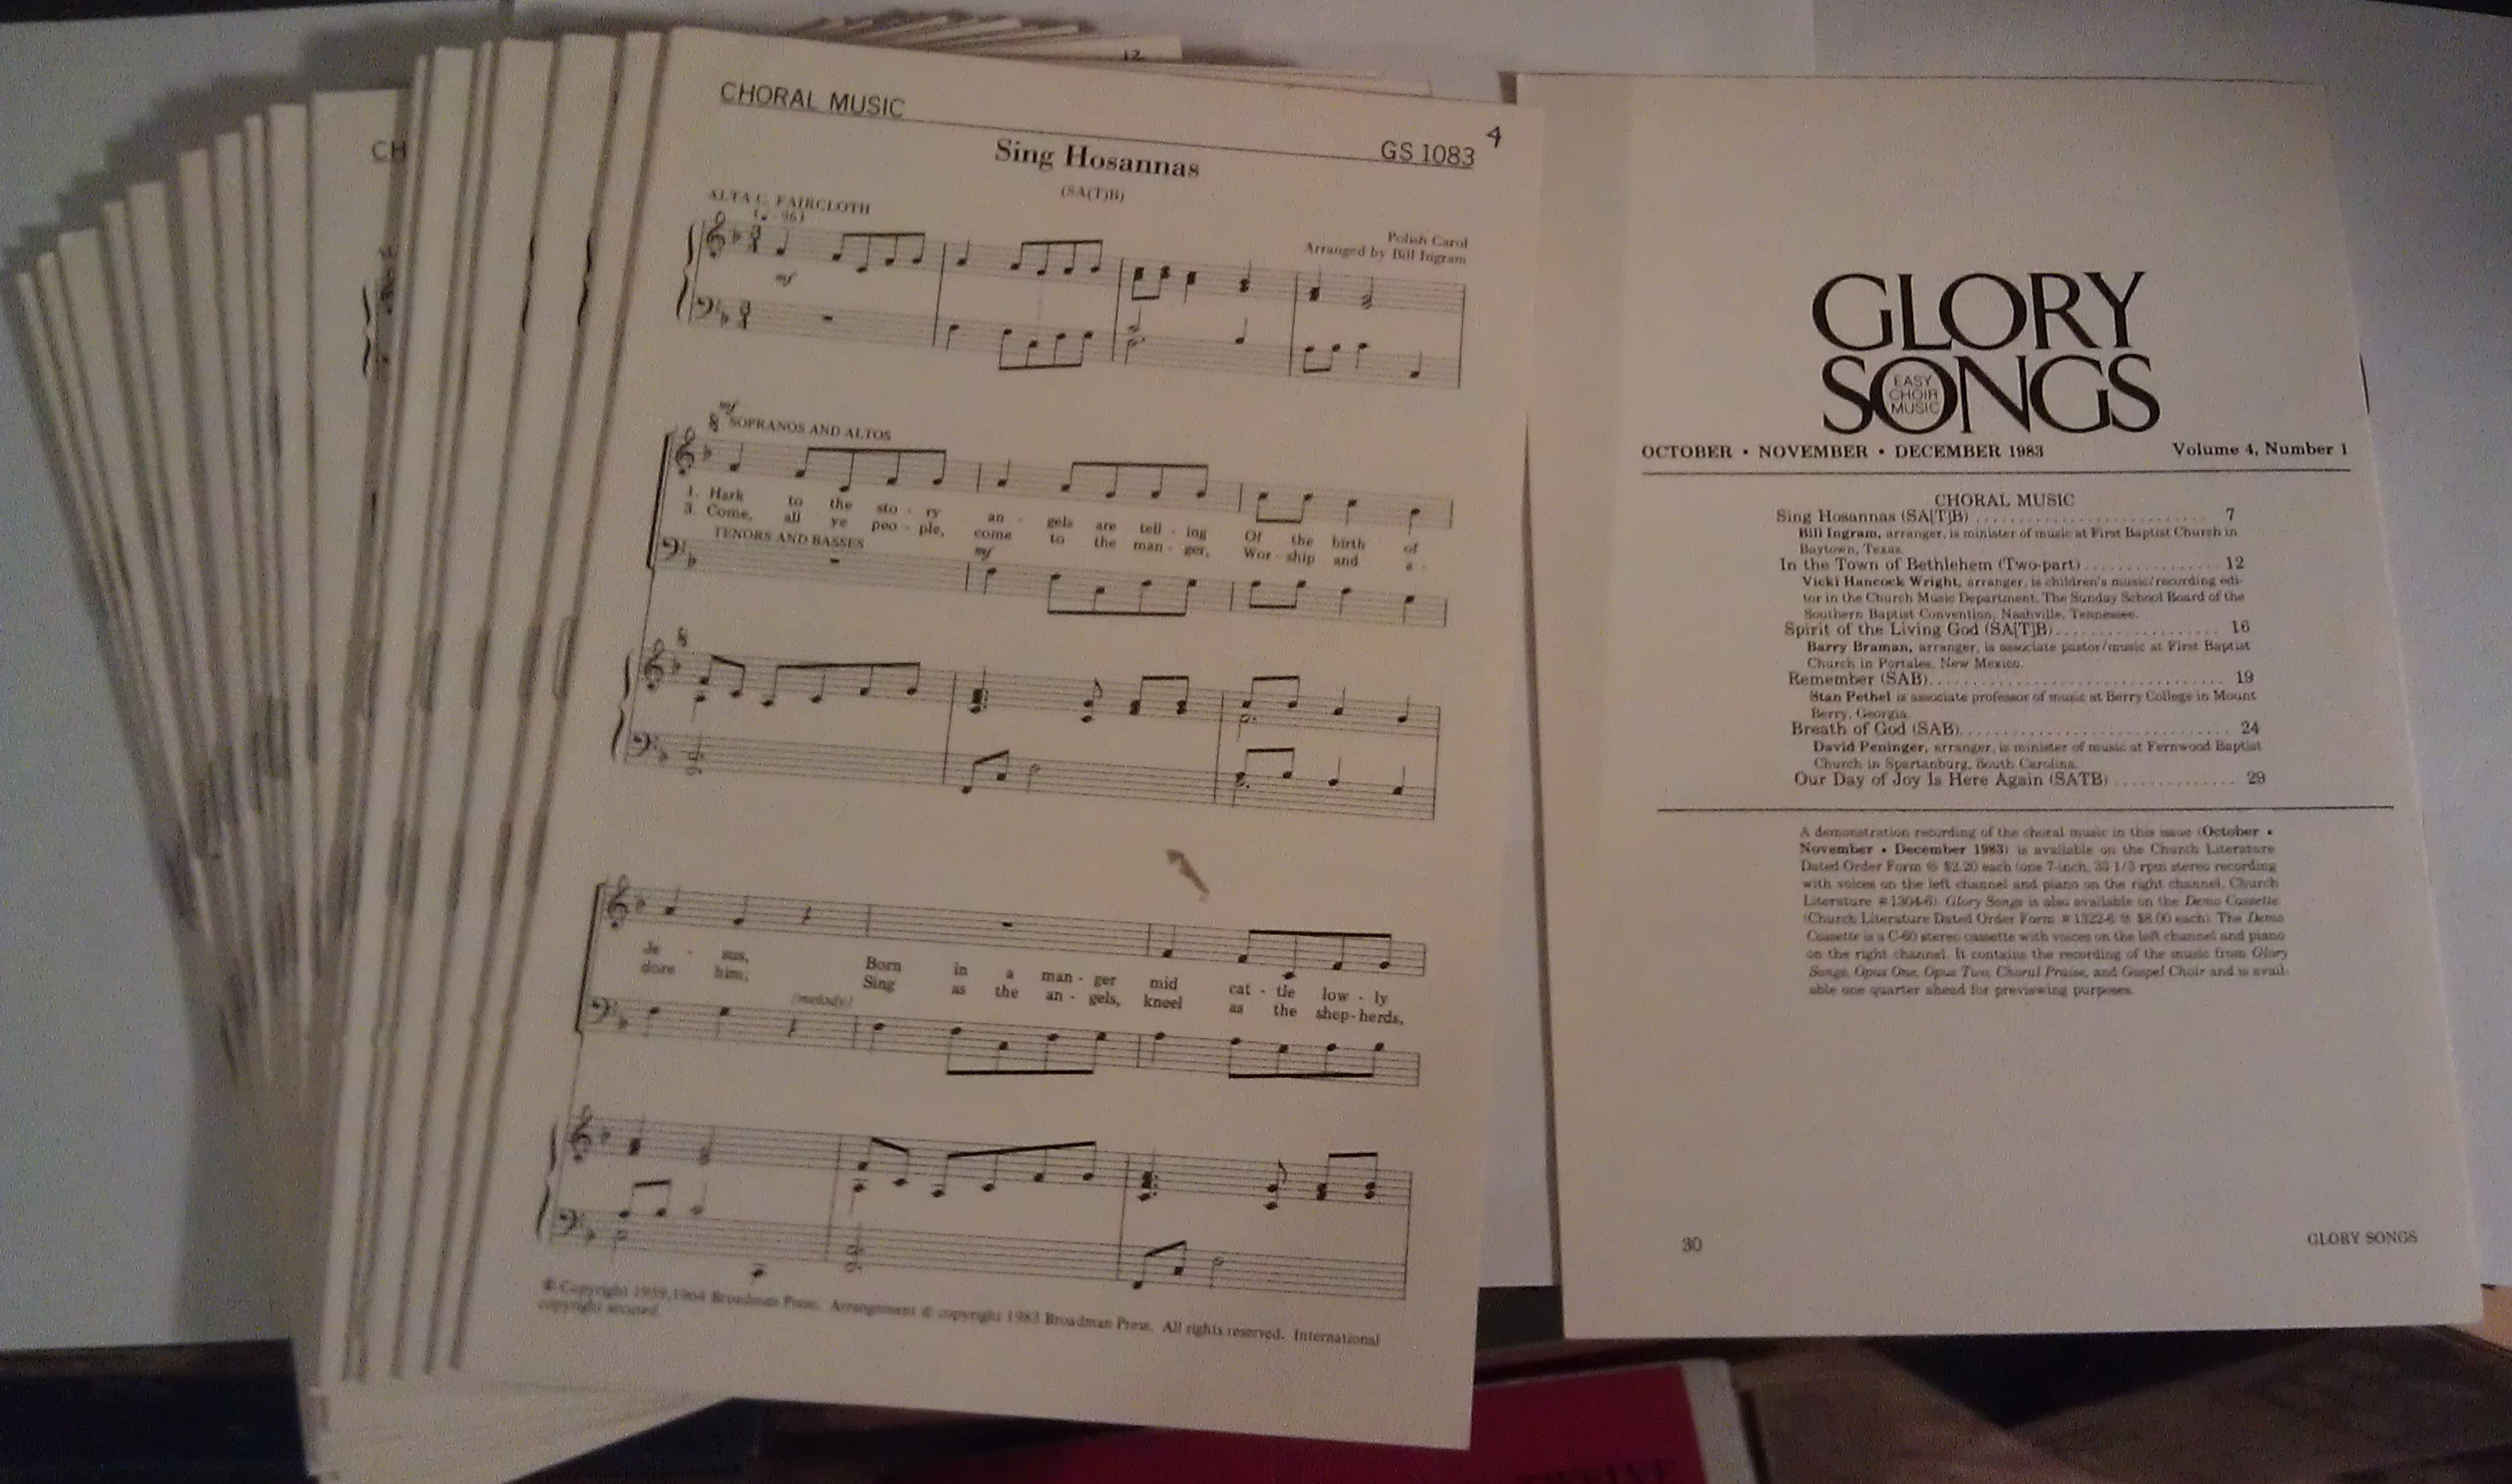 Image for Glory Songs: Broadman Press (22 copies) Vol. 4, Num 1